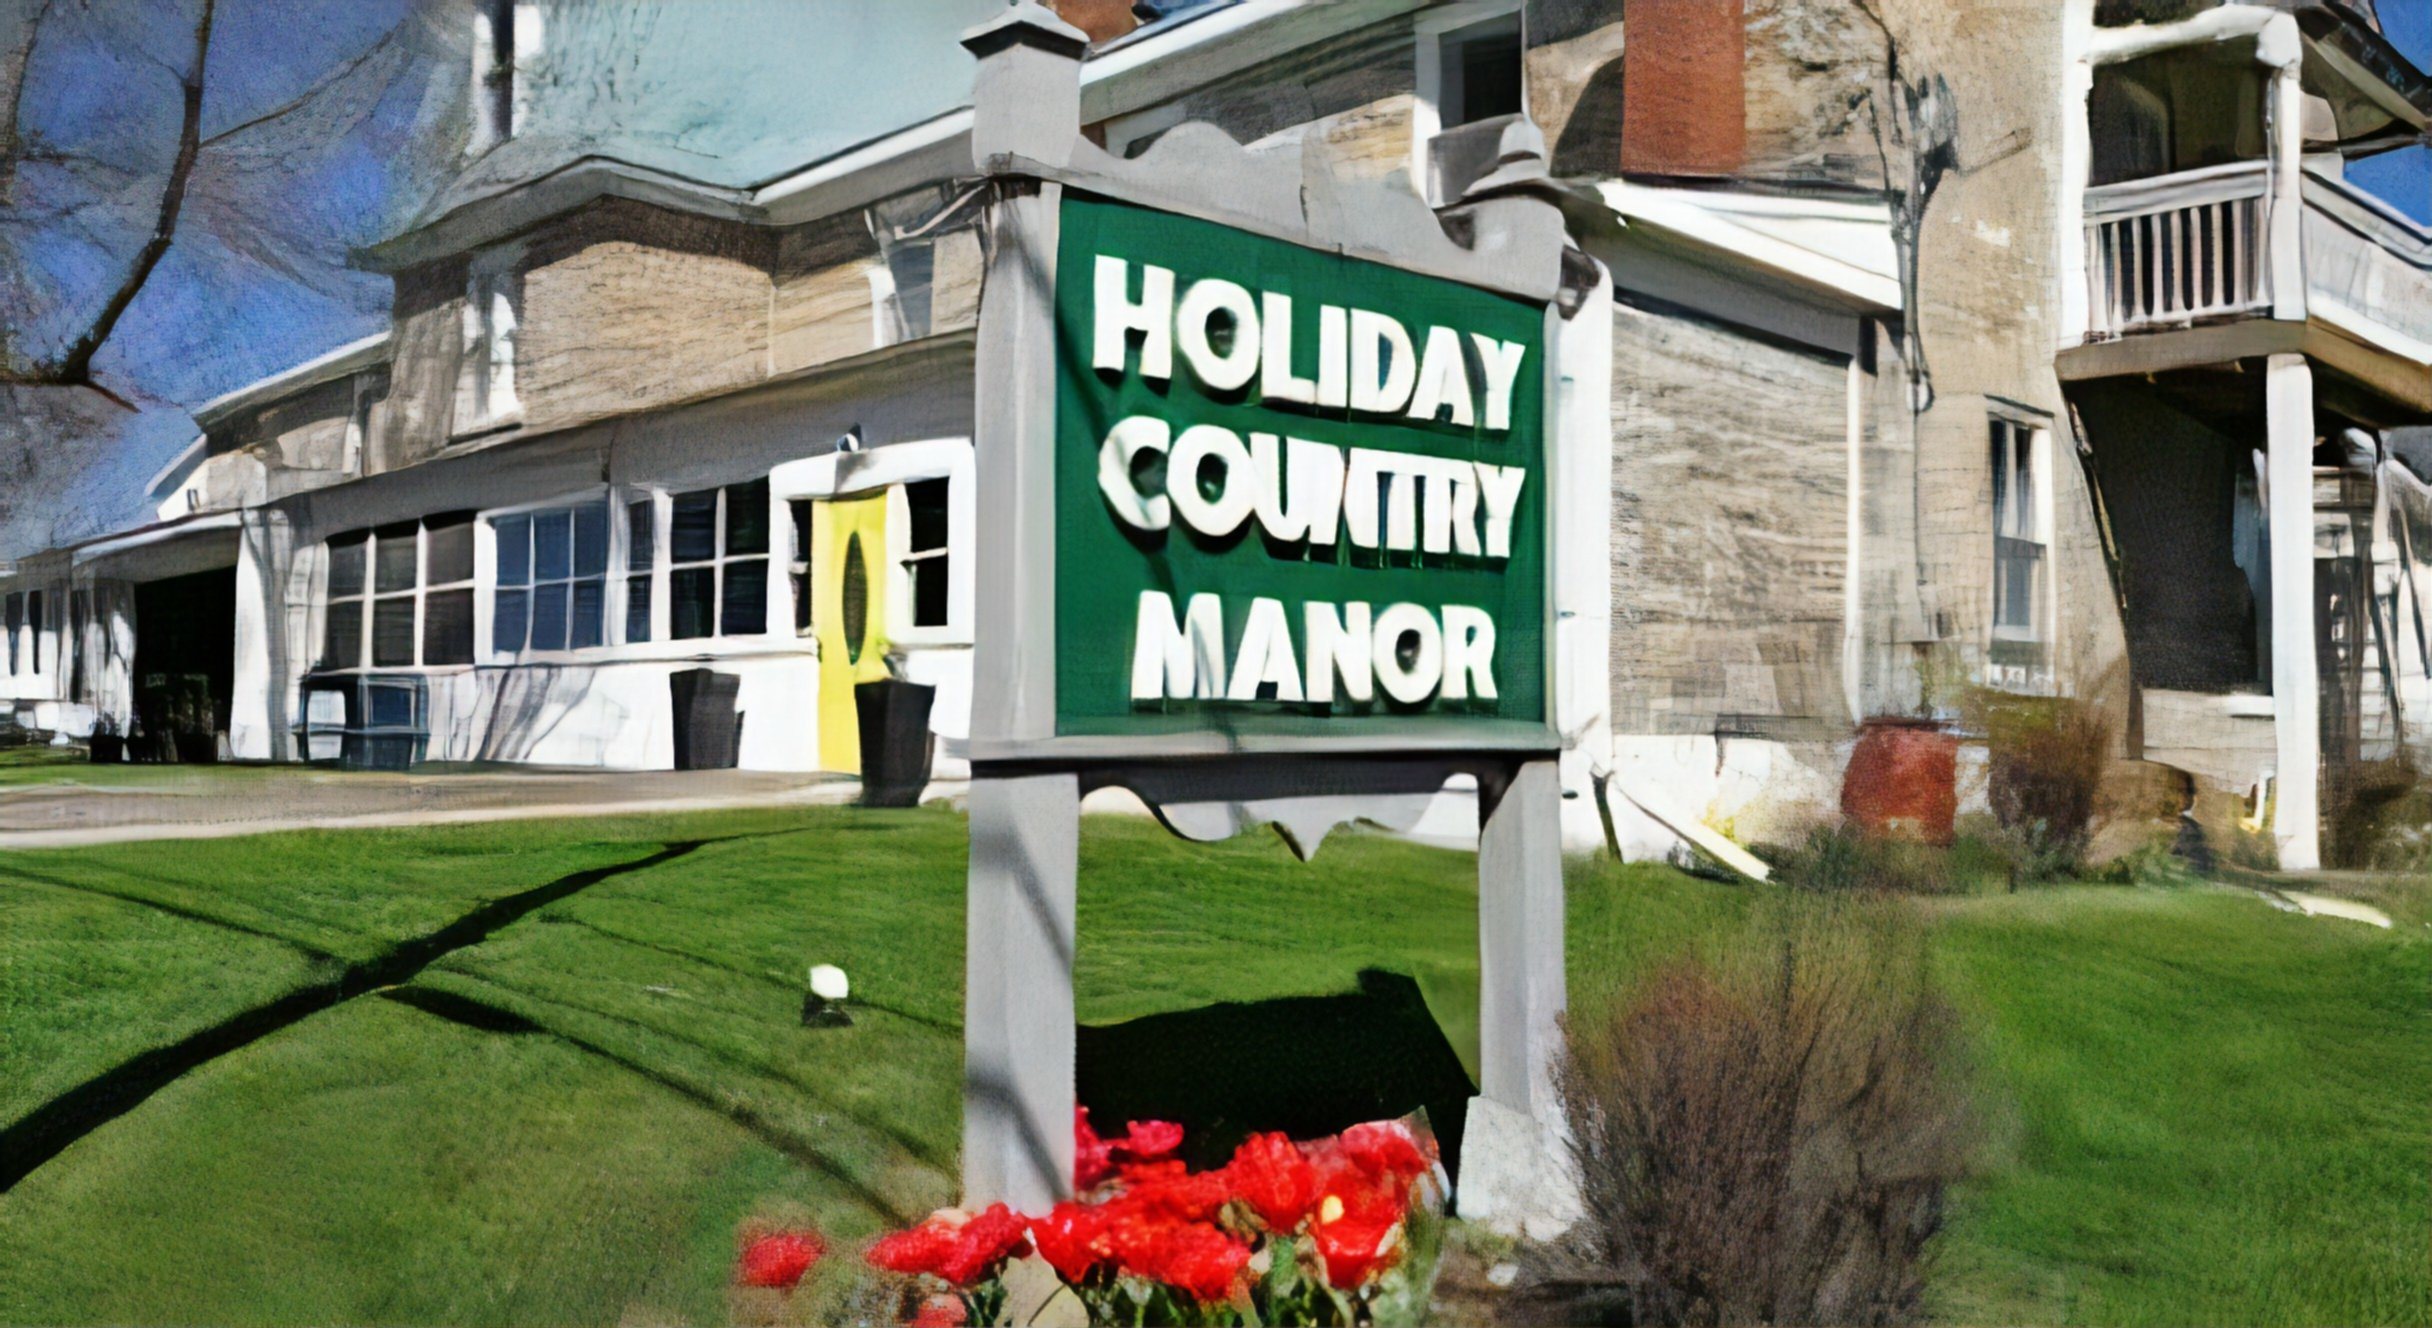 A sign in front of a building at Holiday Country Manor .